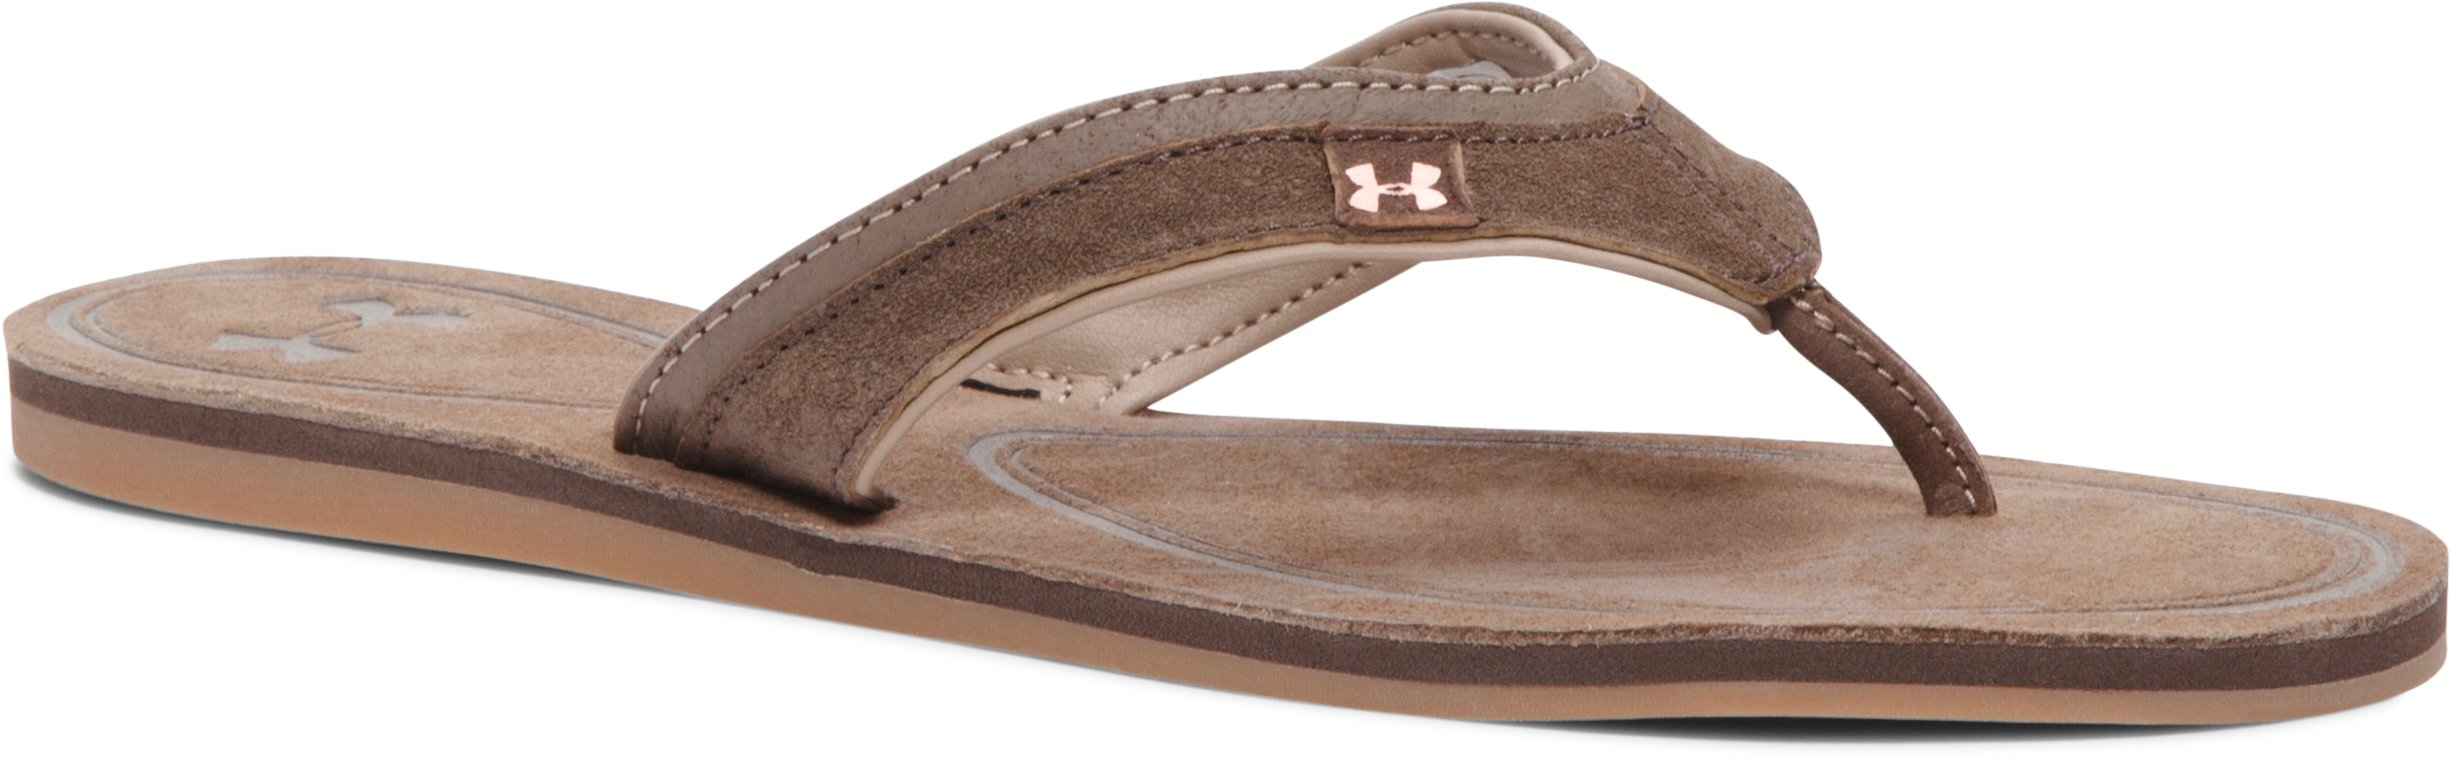 Women's UA TropicFlo Leather Sandals, Cleveland Brown, zoomed image